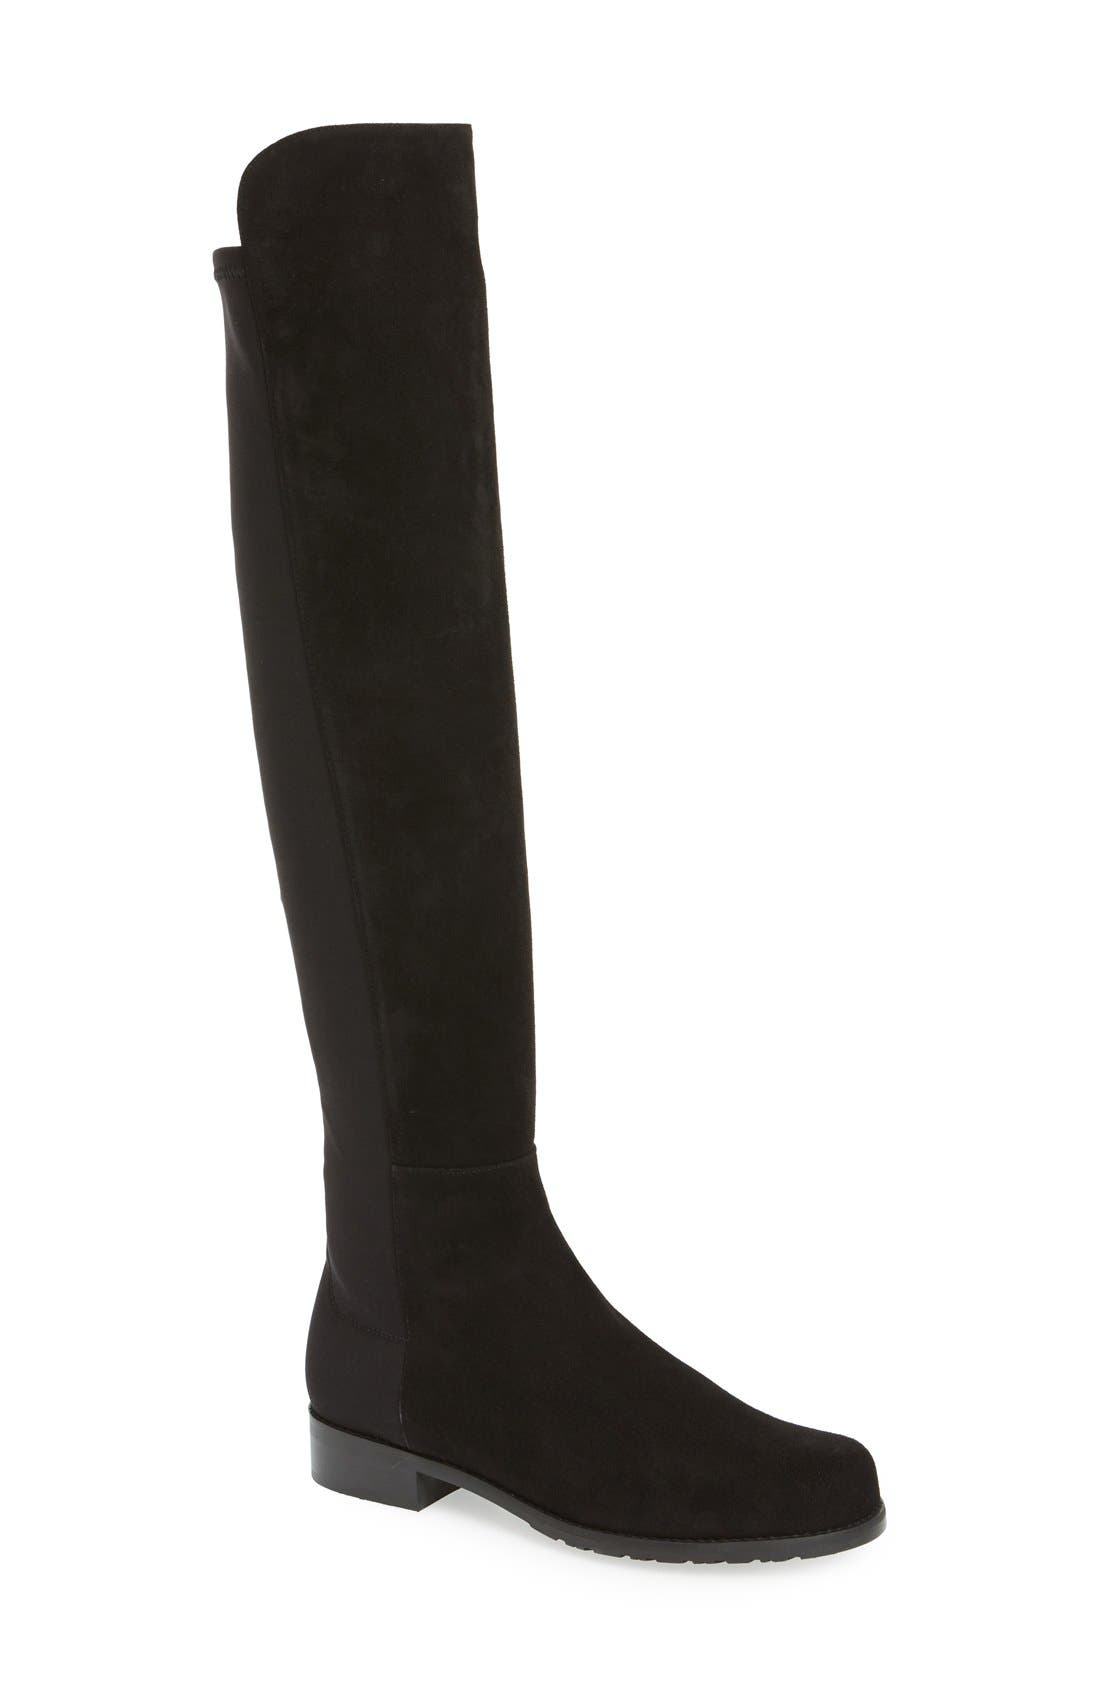 5050 Over the Knee Leather Boot,                             Main thumbnail 1, color,                             BLACK SUEDE